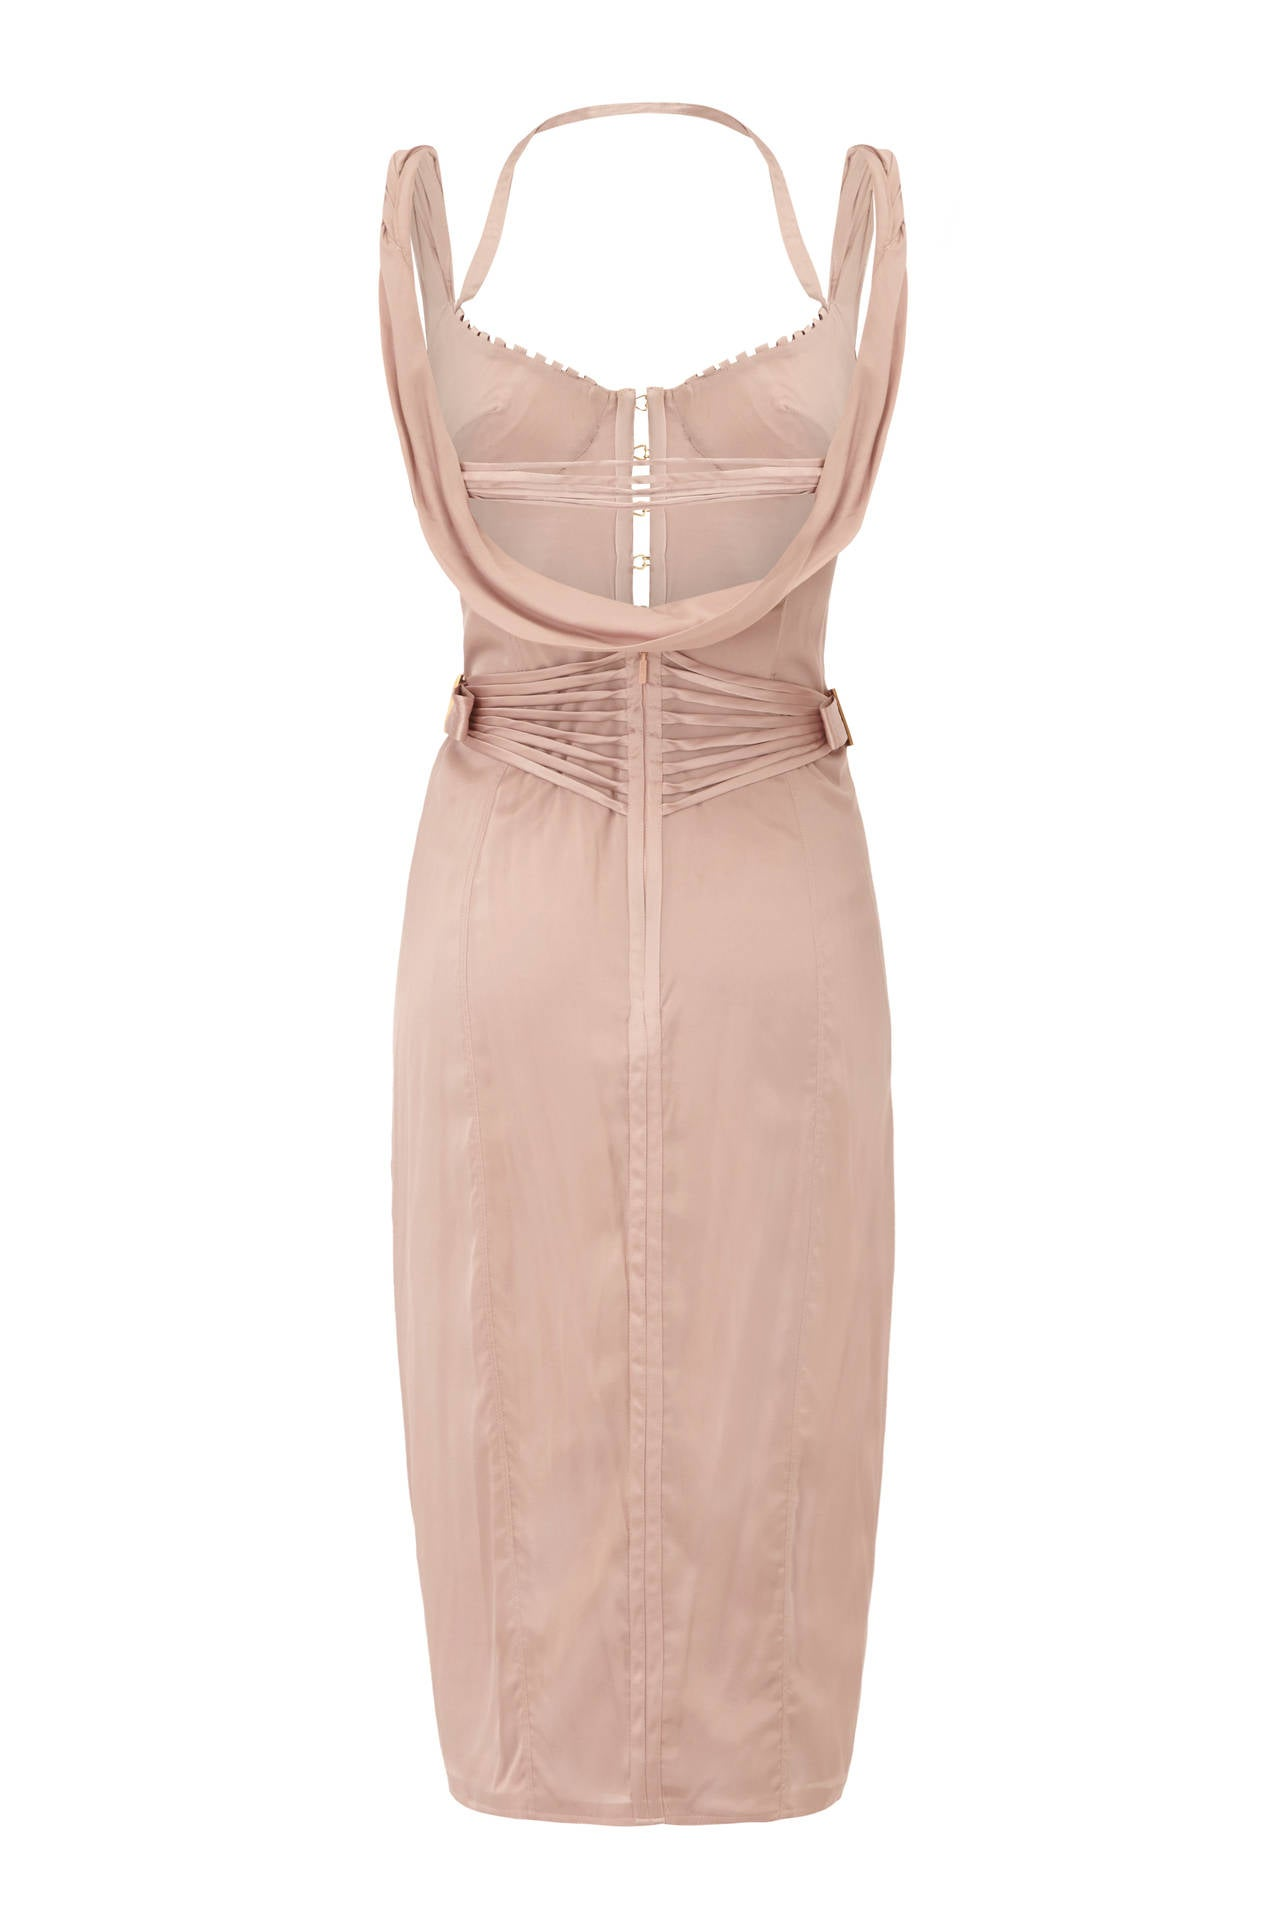 Gorgeous Lilac silk dress from Tom Ford's Fall 2003 ready-to-wear collection for Gucci.  This sexy dress features a corset top and cowl back with lots of strap and topstitching details.  It is 87% silk and 13% spandex making it very comfortable to